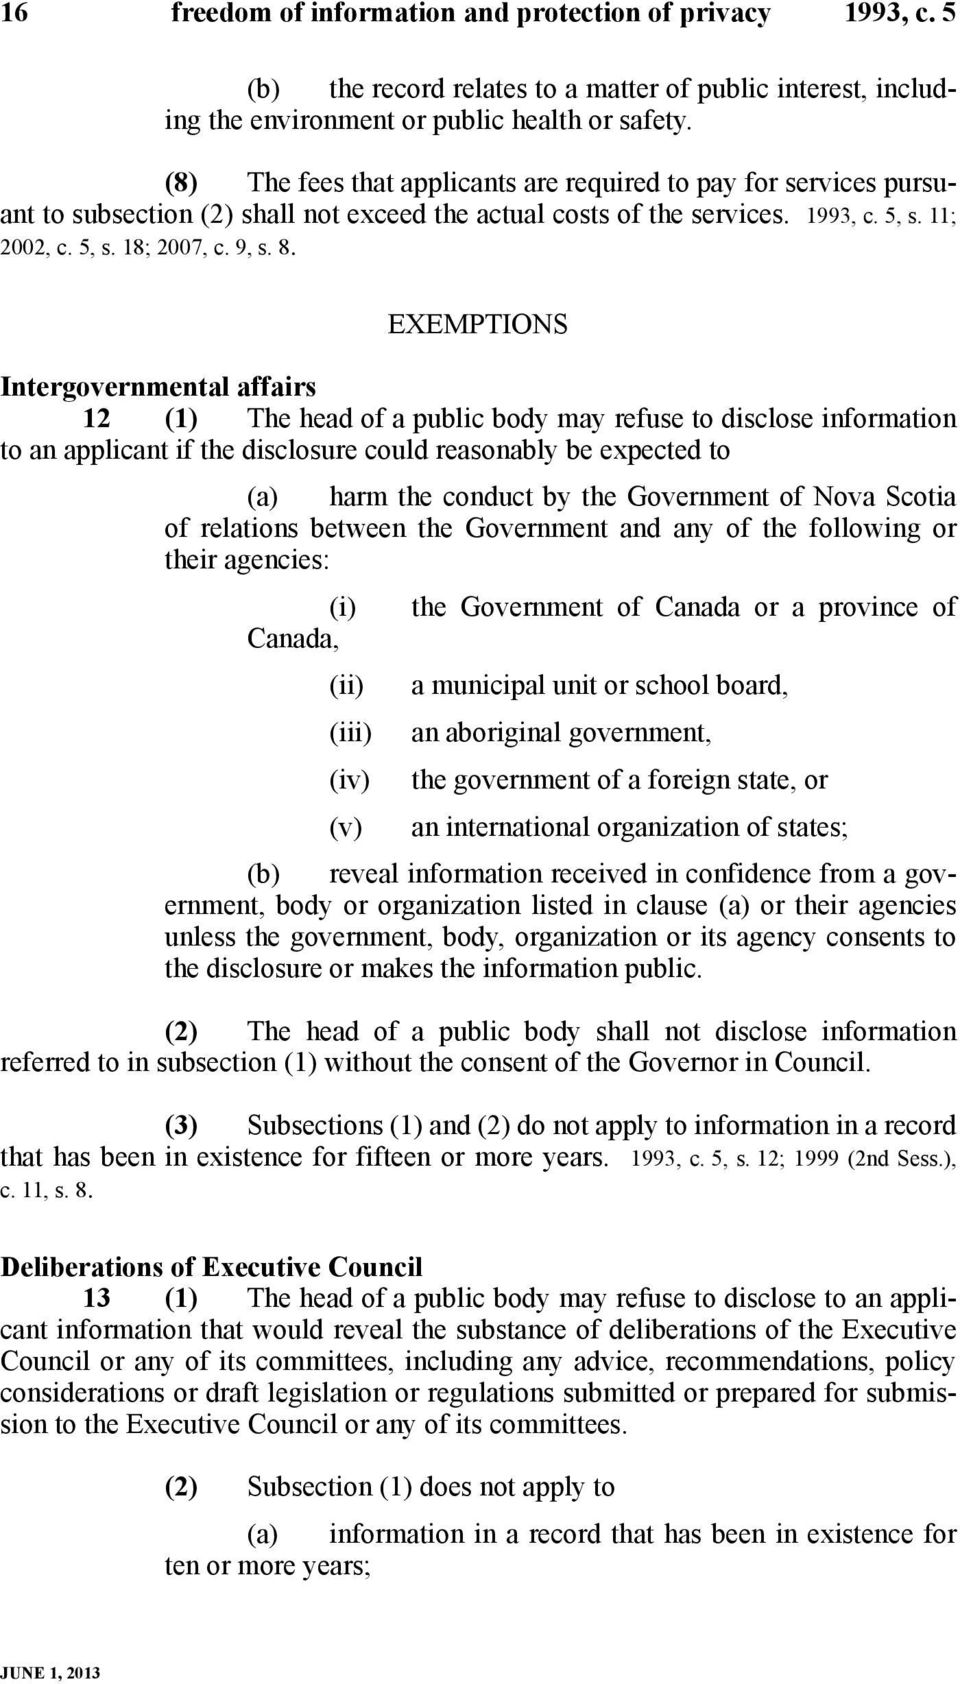 EXEMPTIONS Intergovernmental affairs 12 (1) The head of a public body may refuse to disclose information to an applicant if the disclosure could reasonably be expected to (a) harm the conduct by the